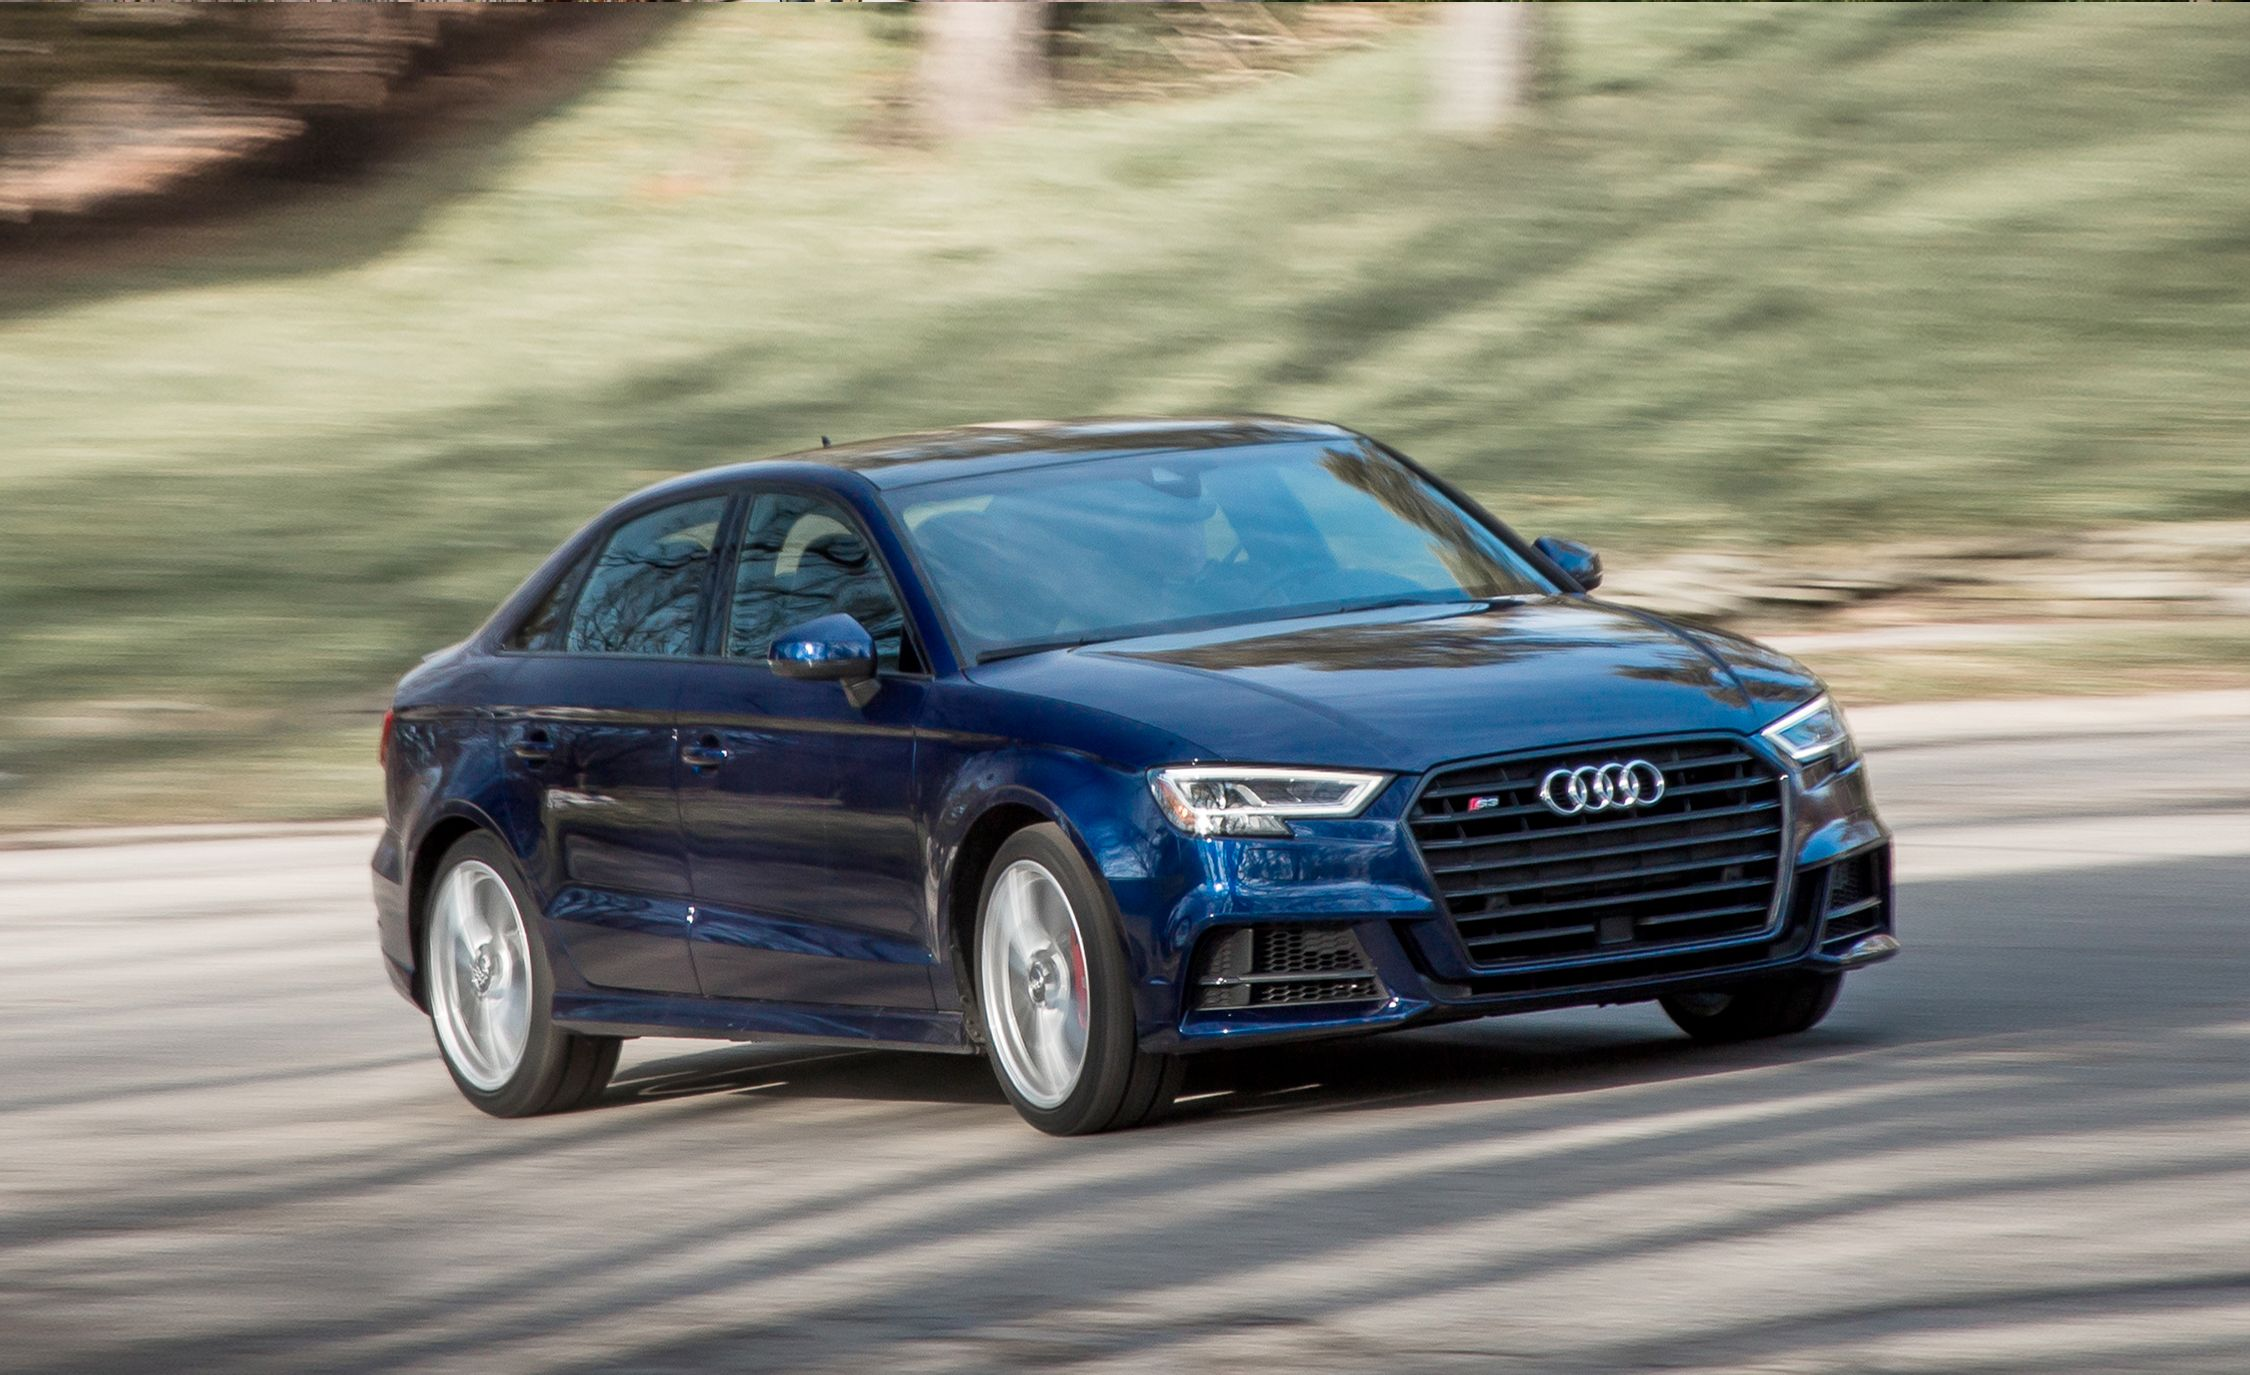 Audi S3 Reviews Audi S3 Price s and Specs